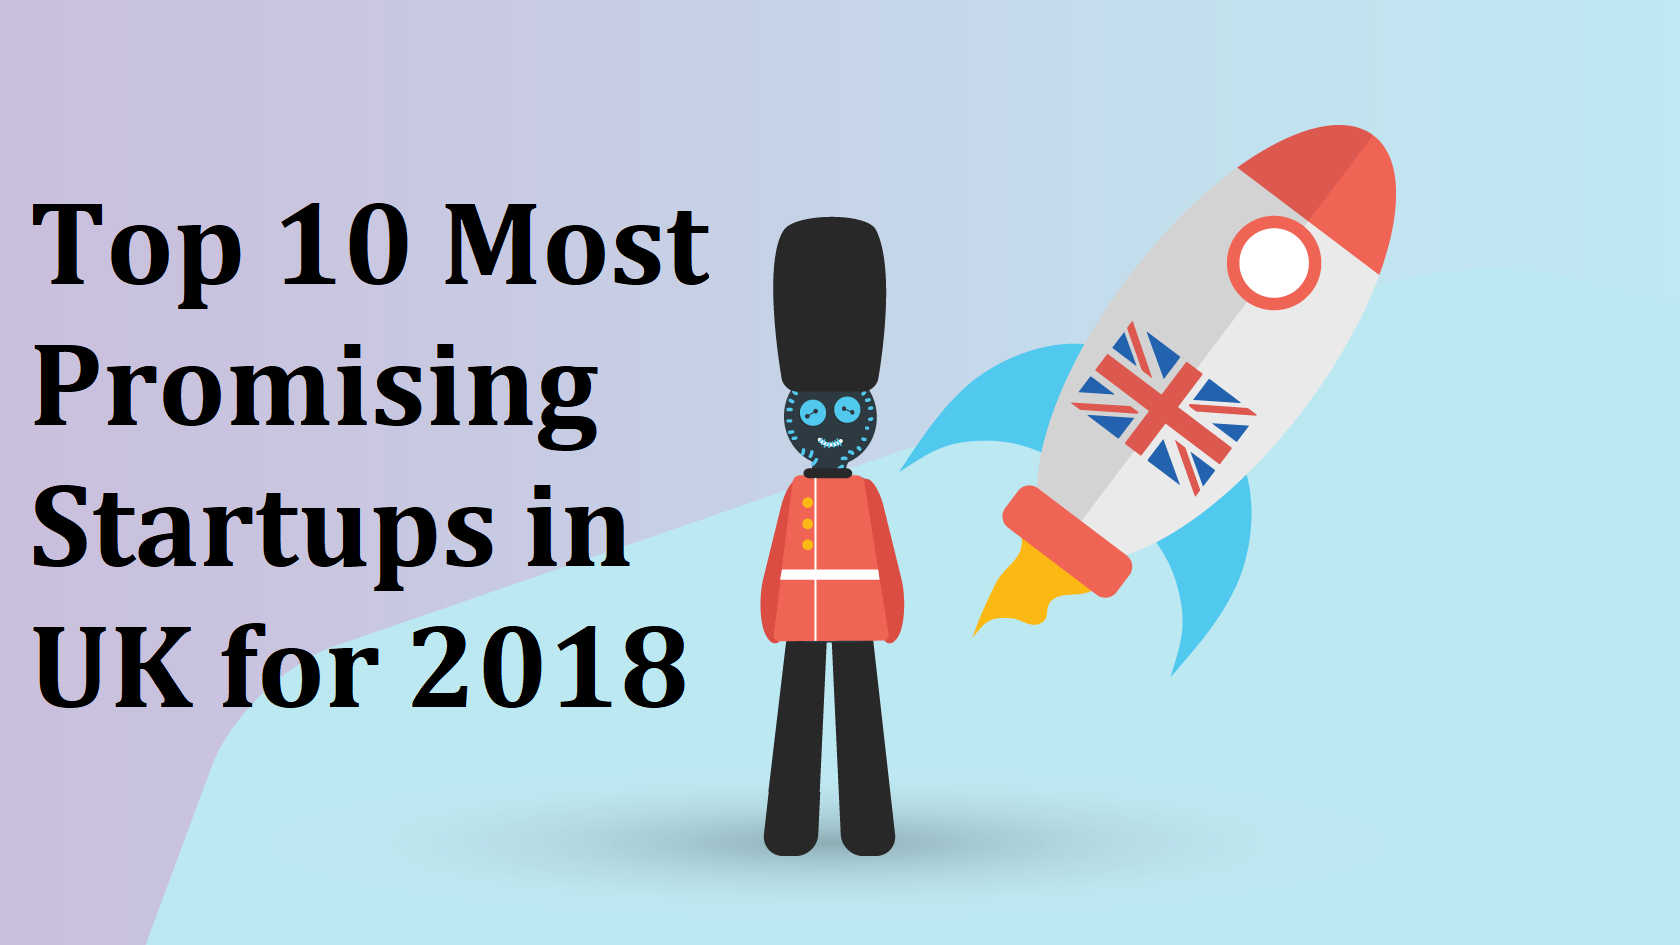 10 Most Promising B2B Startups in the UK for 2018